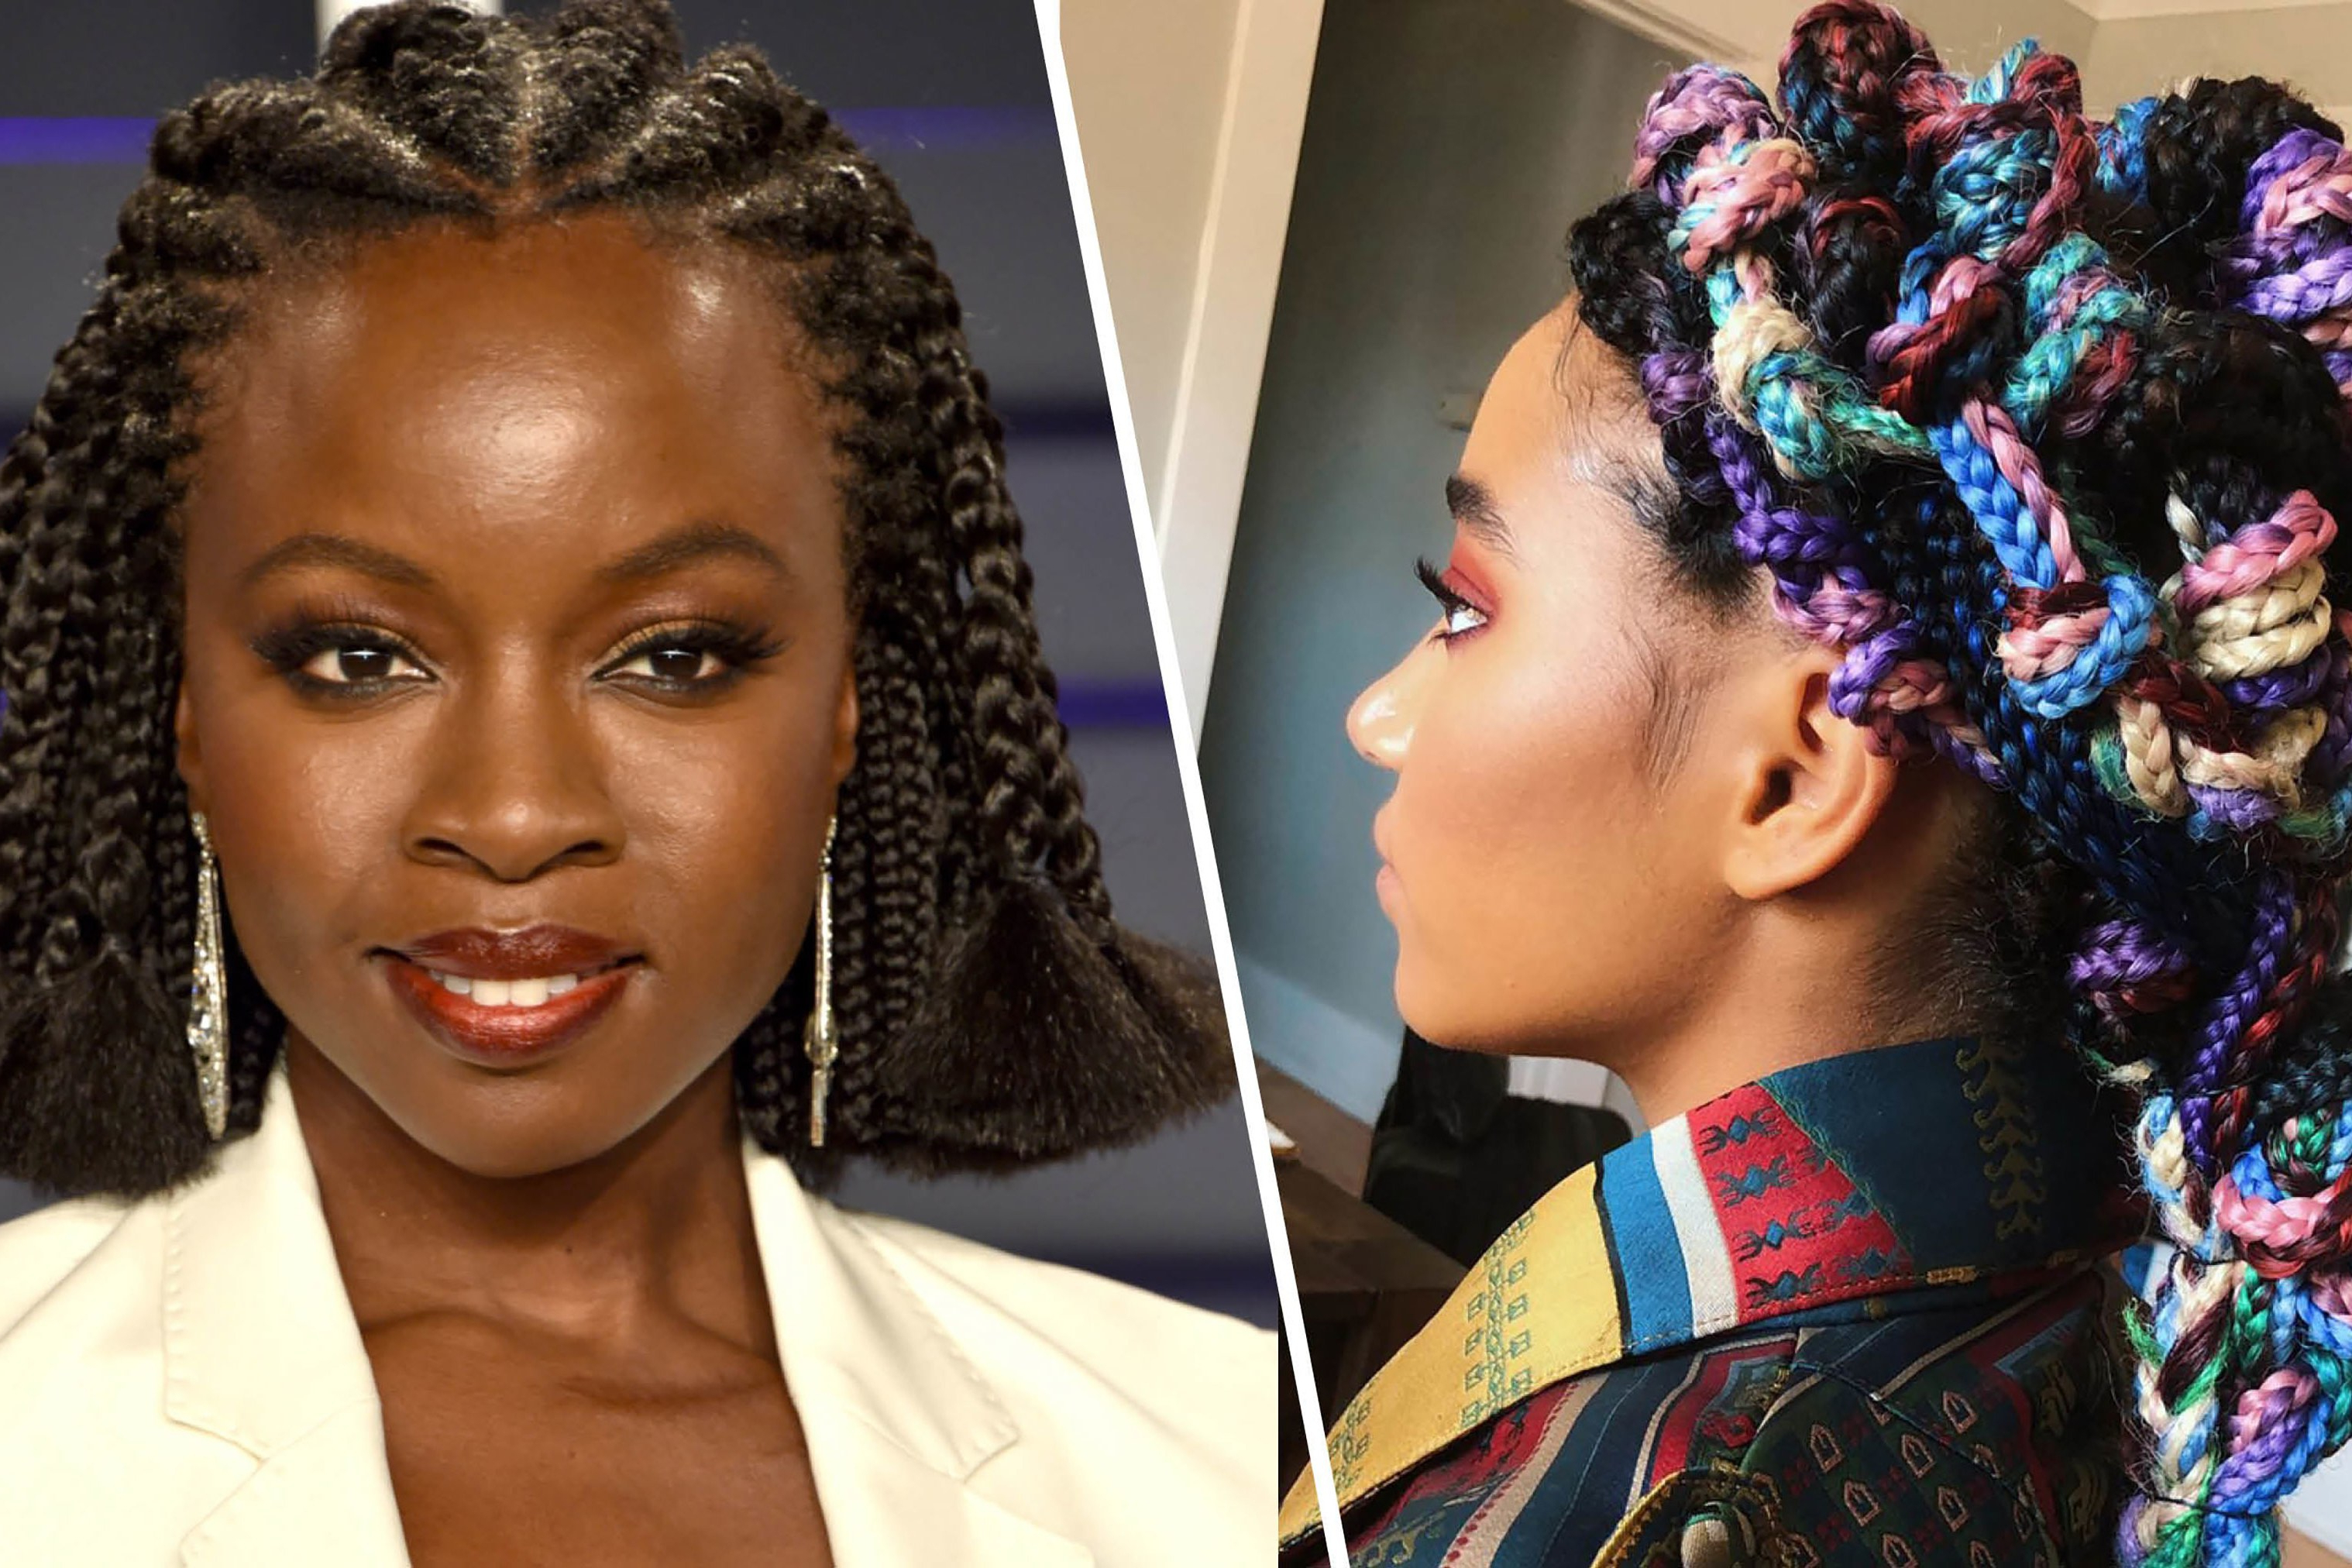 2019 Oversized Fishtail Braided Hairstyles With Regard To 21 Dope Box Braids Hairstyles To Try (View 2 of 20)